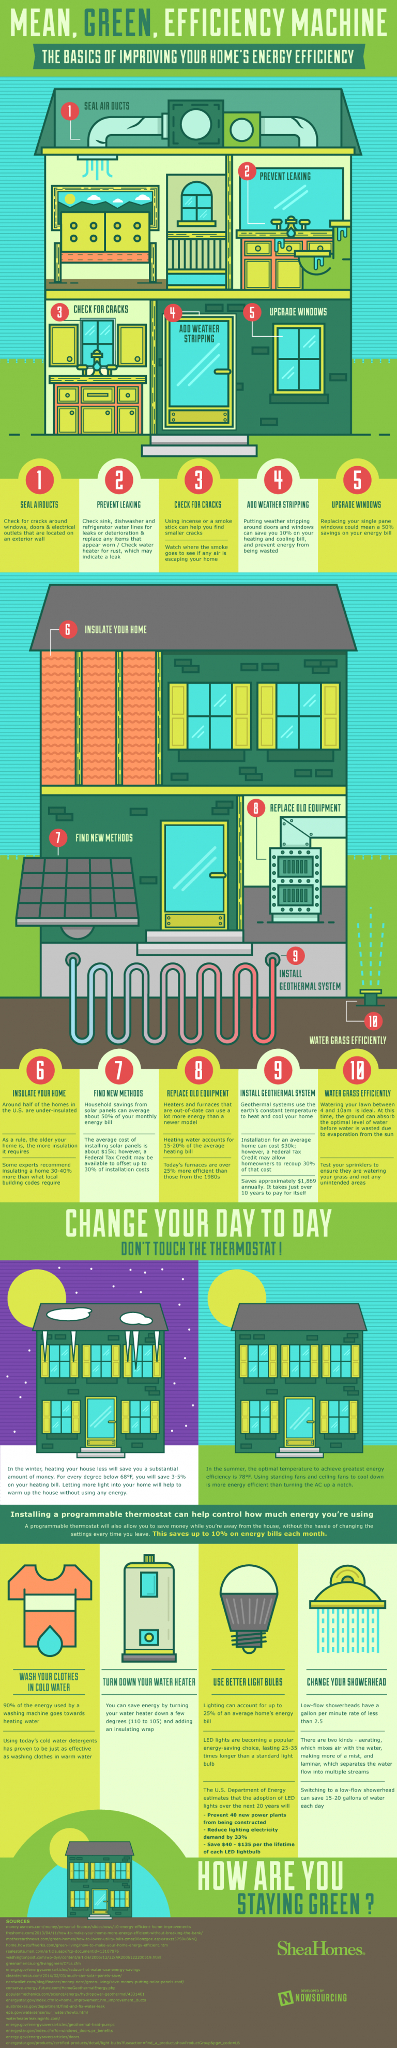 Blog_SH_Improving_Home_Energy_Efficiency_Infographic